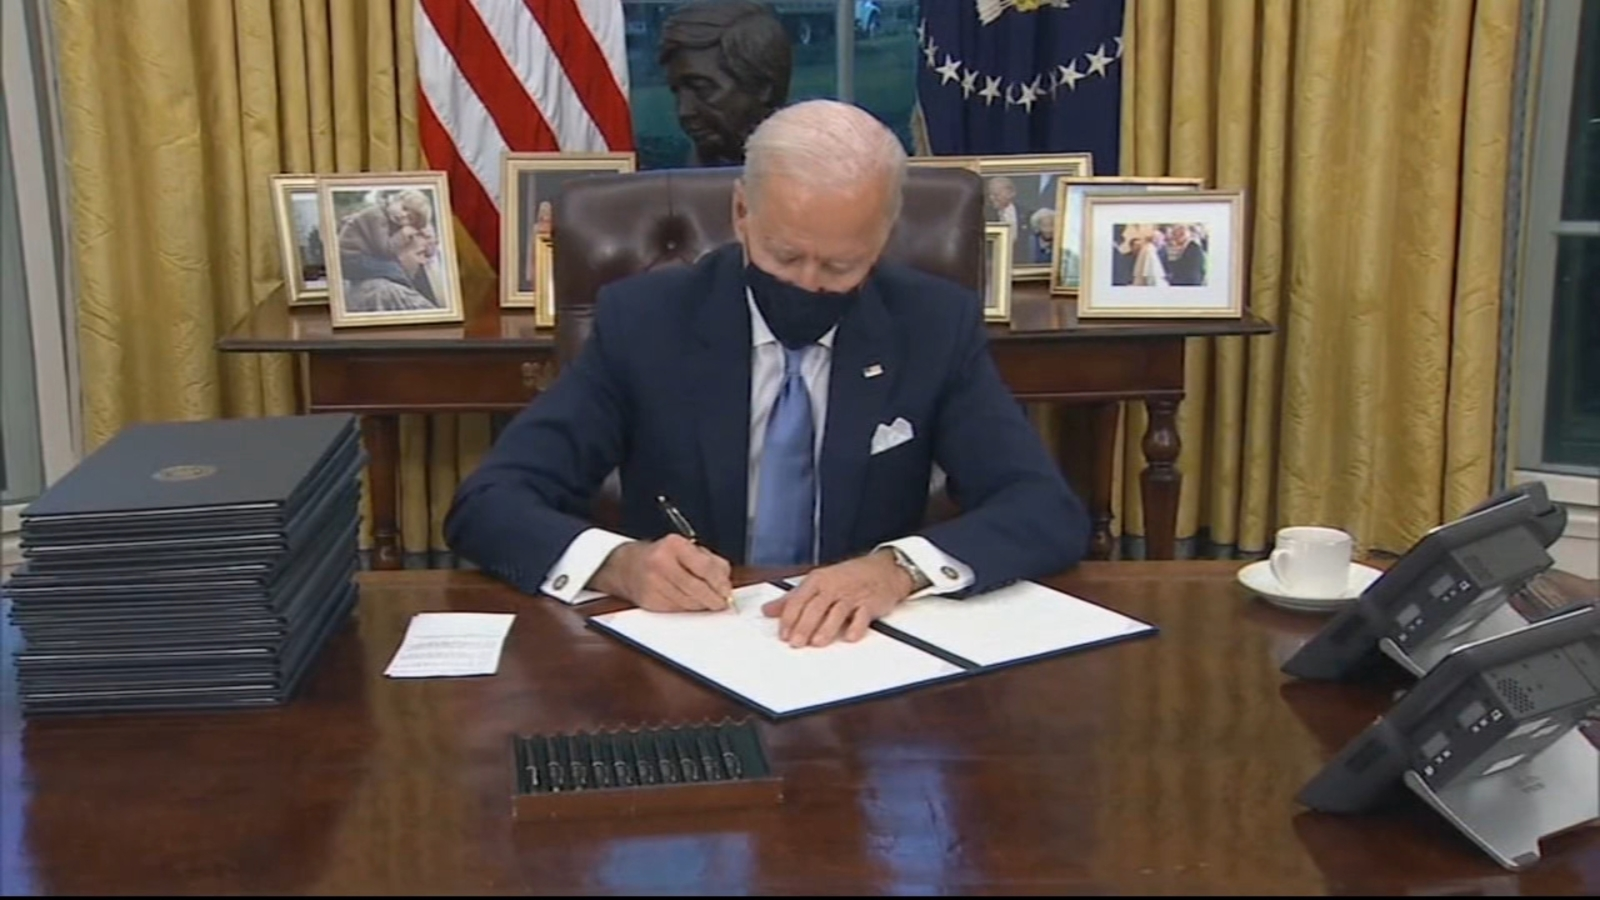 6abc.com: Biden has signed 42 executive actions. Here's what each does